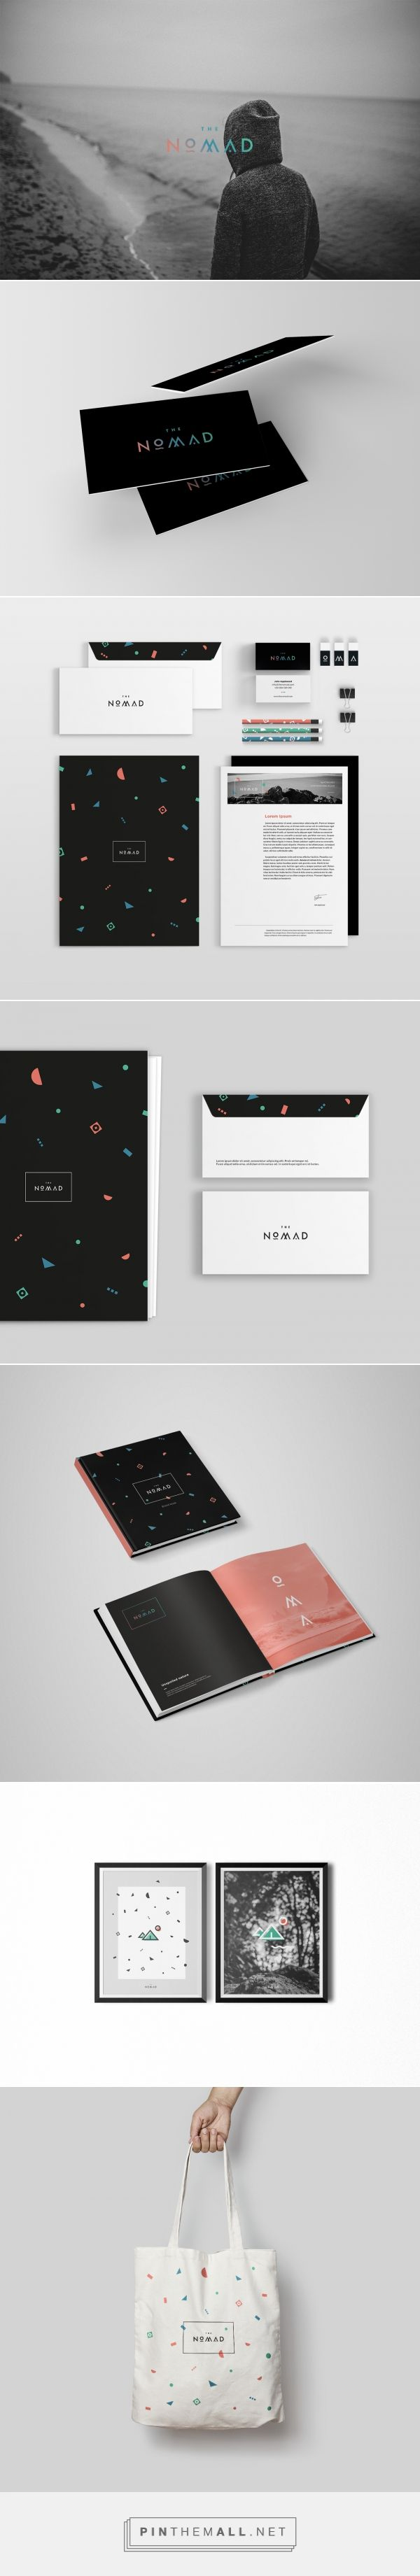 The Nomad | Branding on Behance  | Fivestar Branding – Design and Branding Agency & Inspiration Gallery